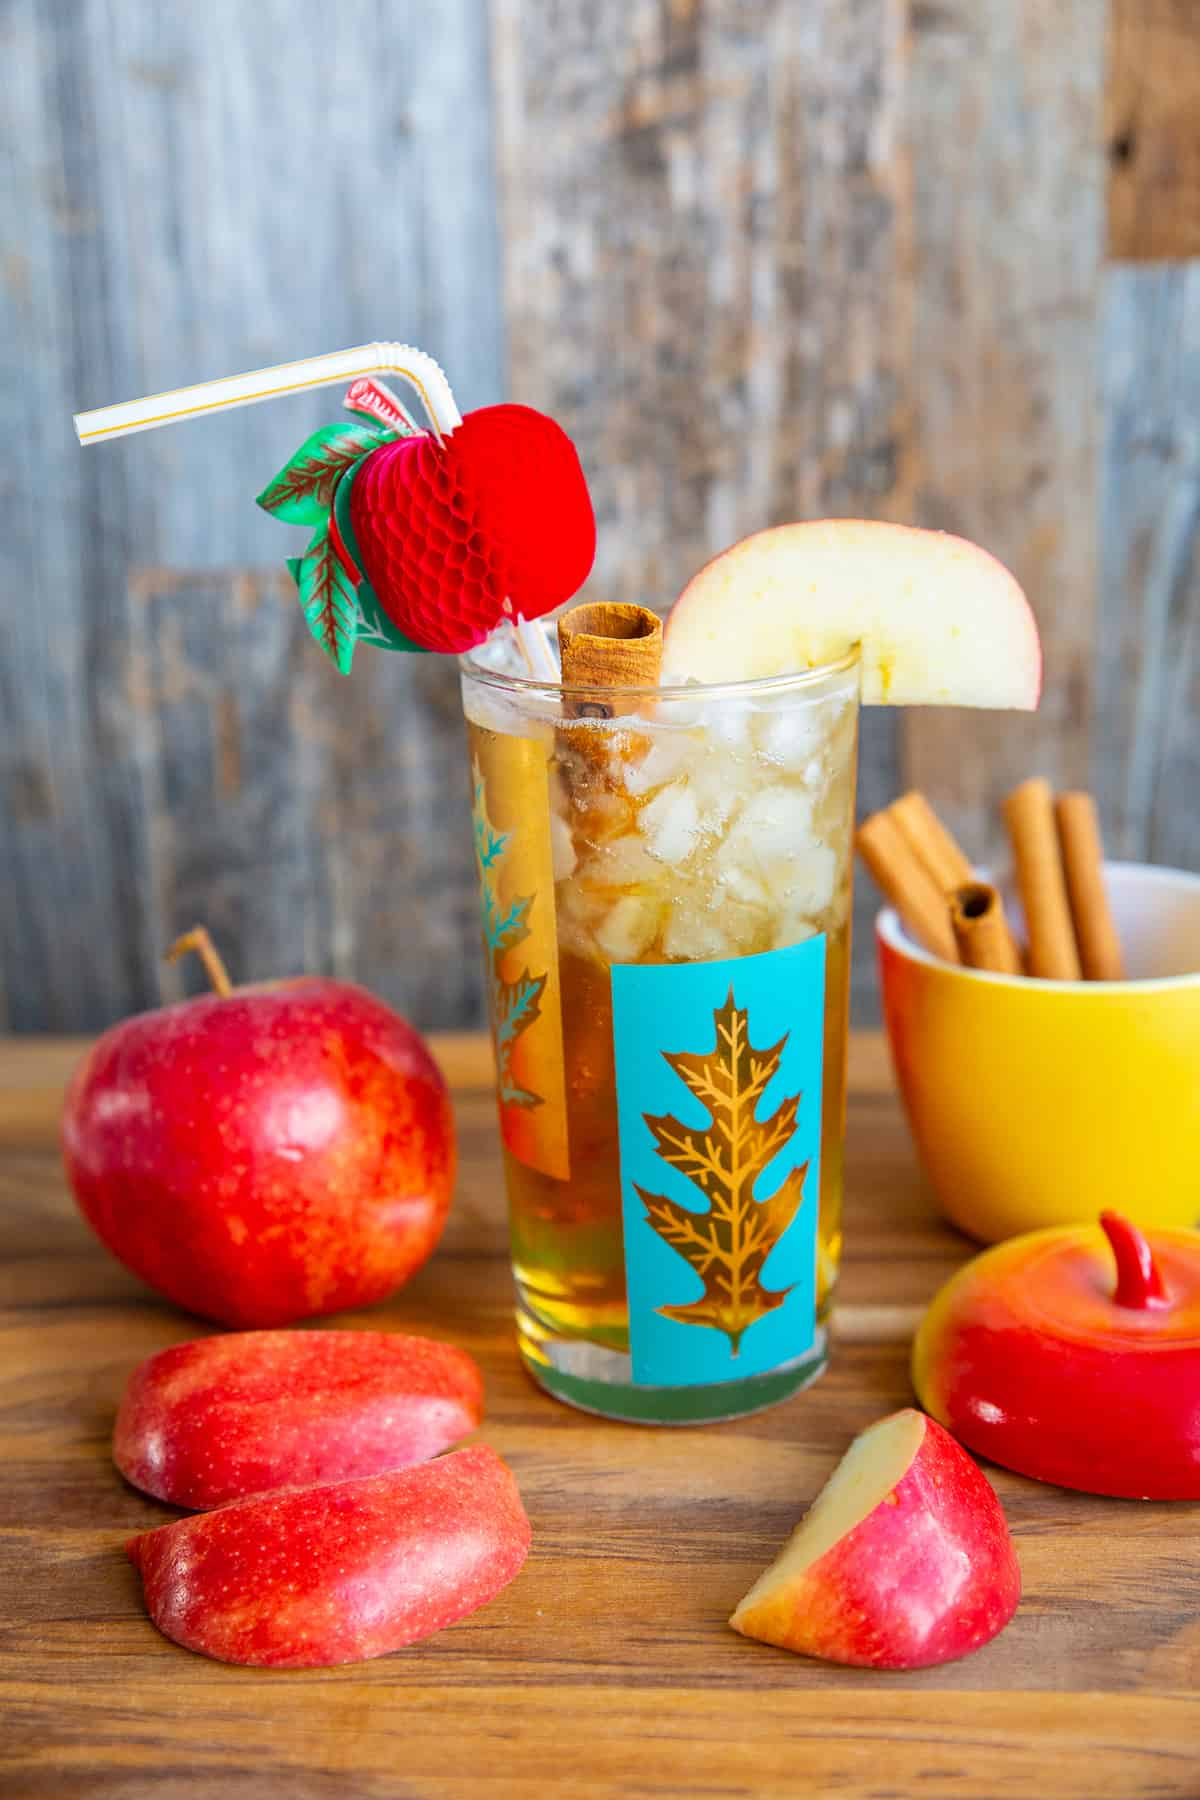 Apple Cider Cocktail in a turquoise and gold glass on a wood board surrounded by cinnamon sticks and apples.